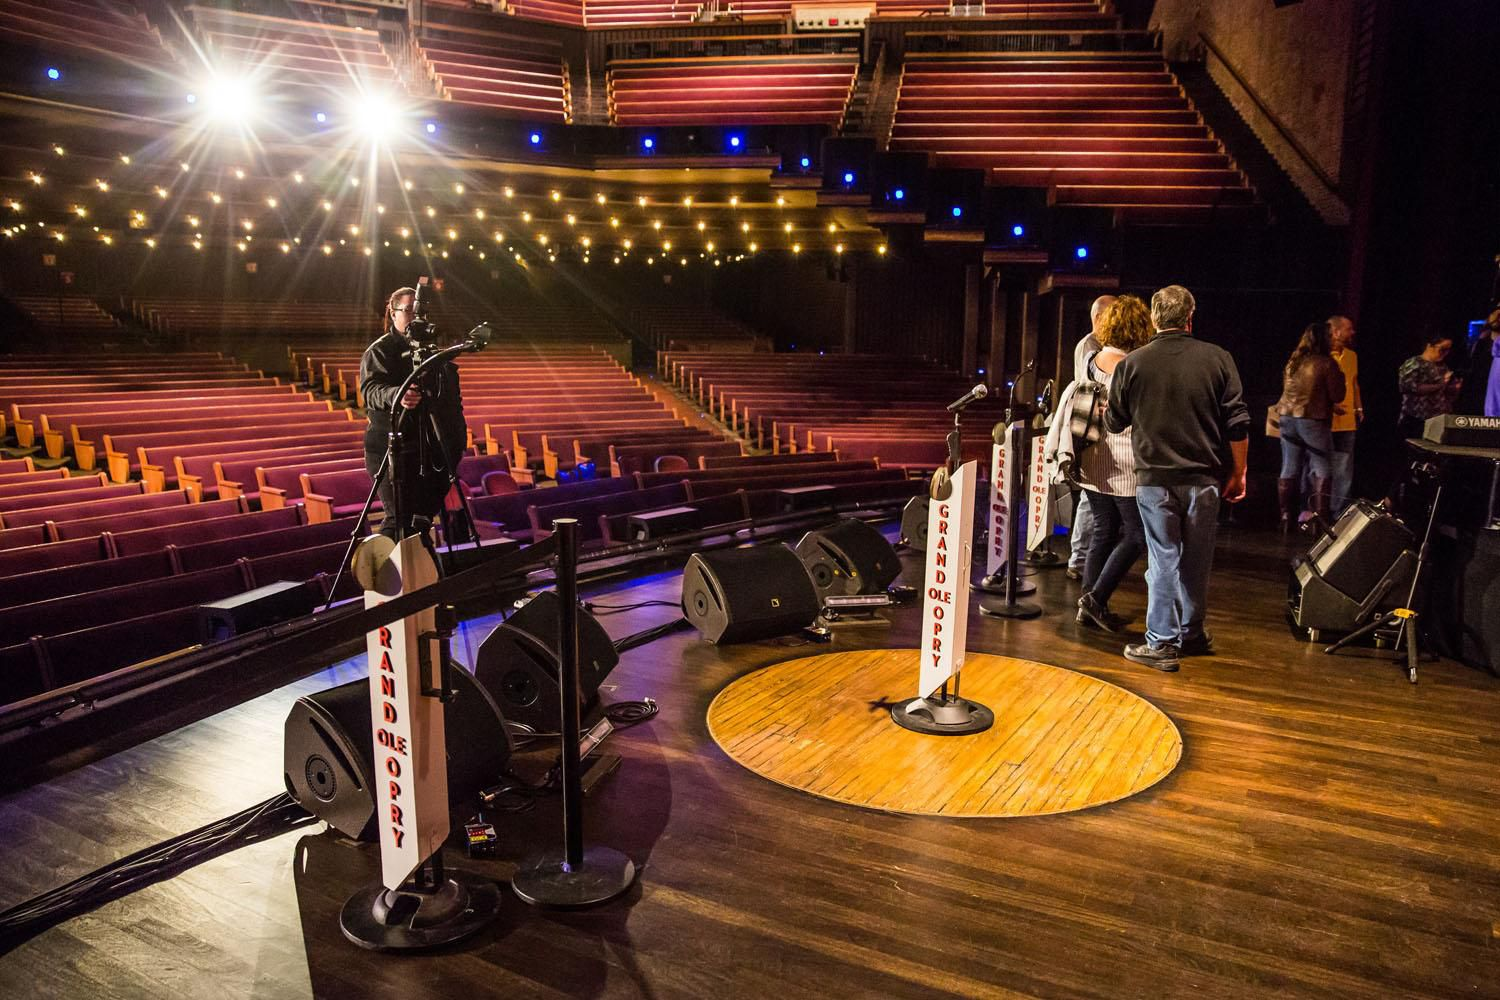 On Stage at the Grand Ole Opry